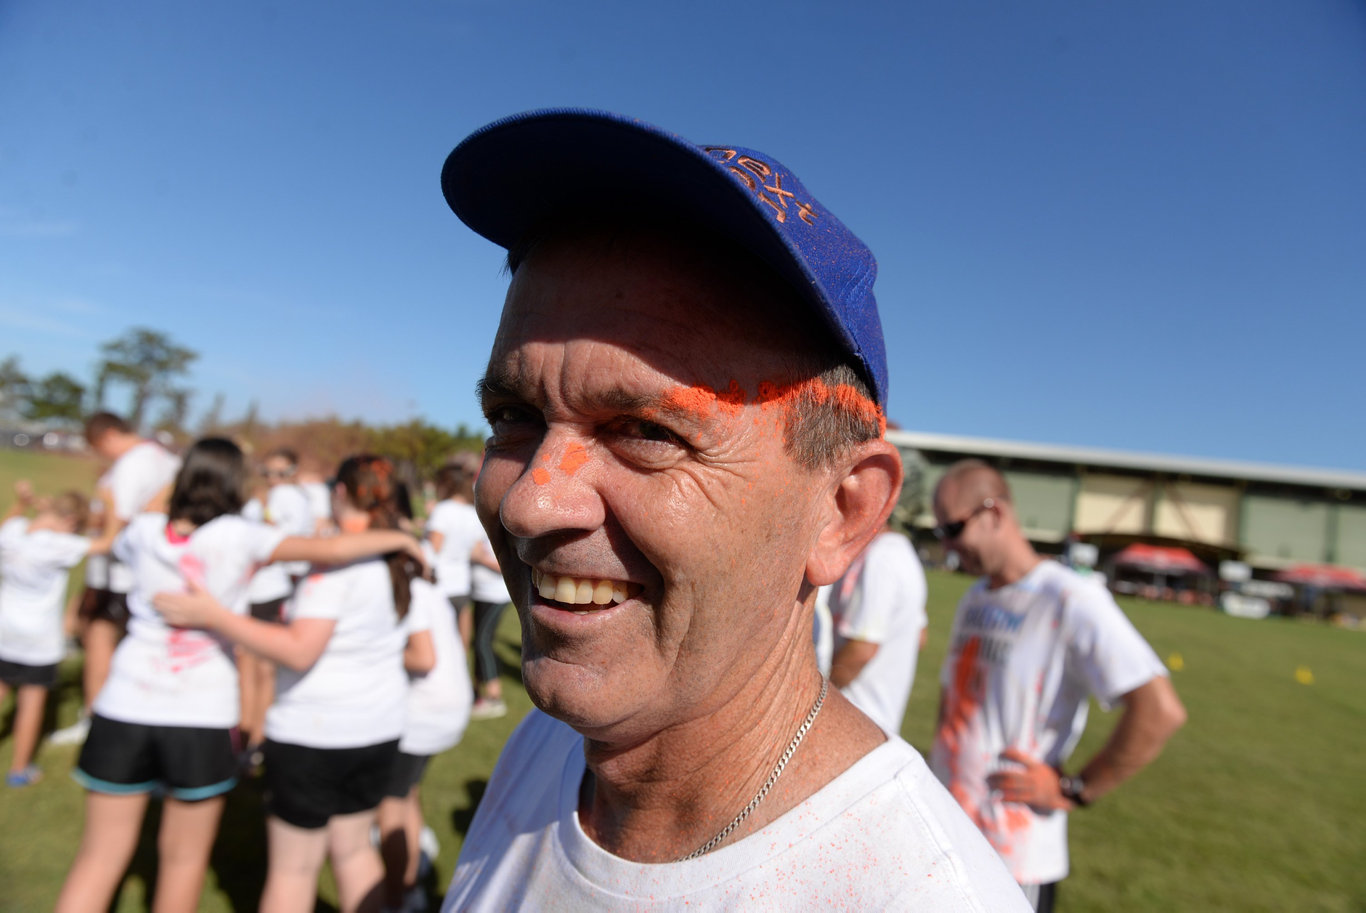 FUN RUN: Cr Vince Habermann enjoyed the Shalom Colour Fun event at the school.Photo: Mike Knott / NewsMail